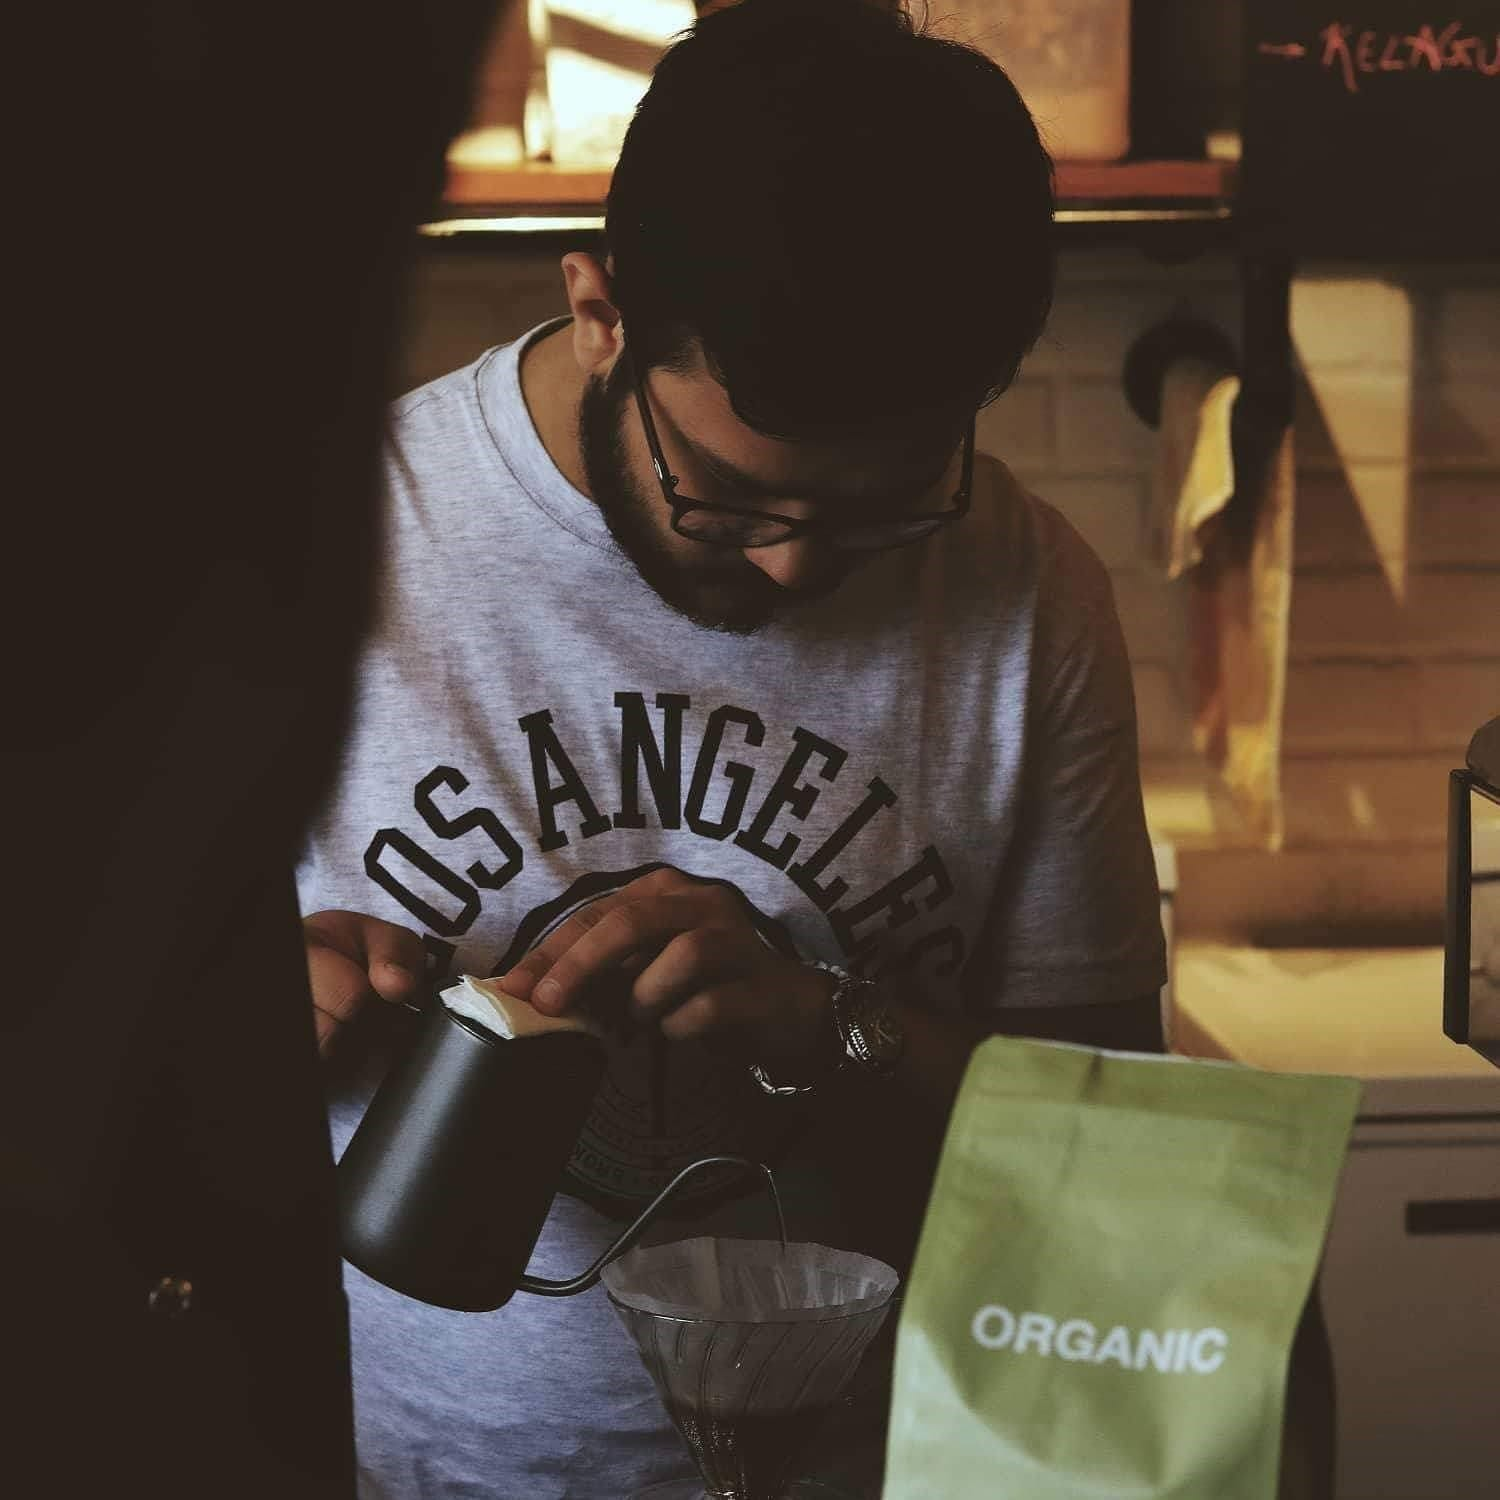 a barista brews on a V60 for a client